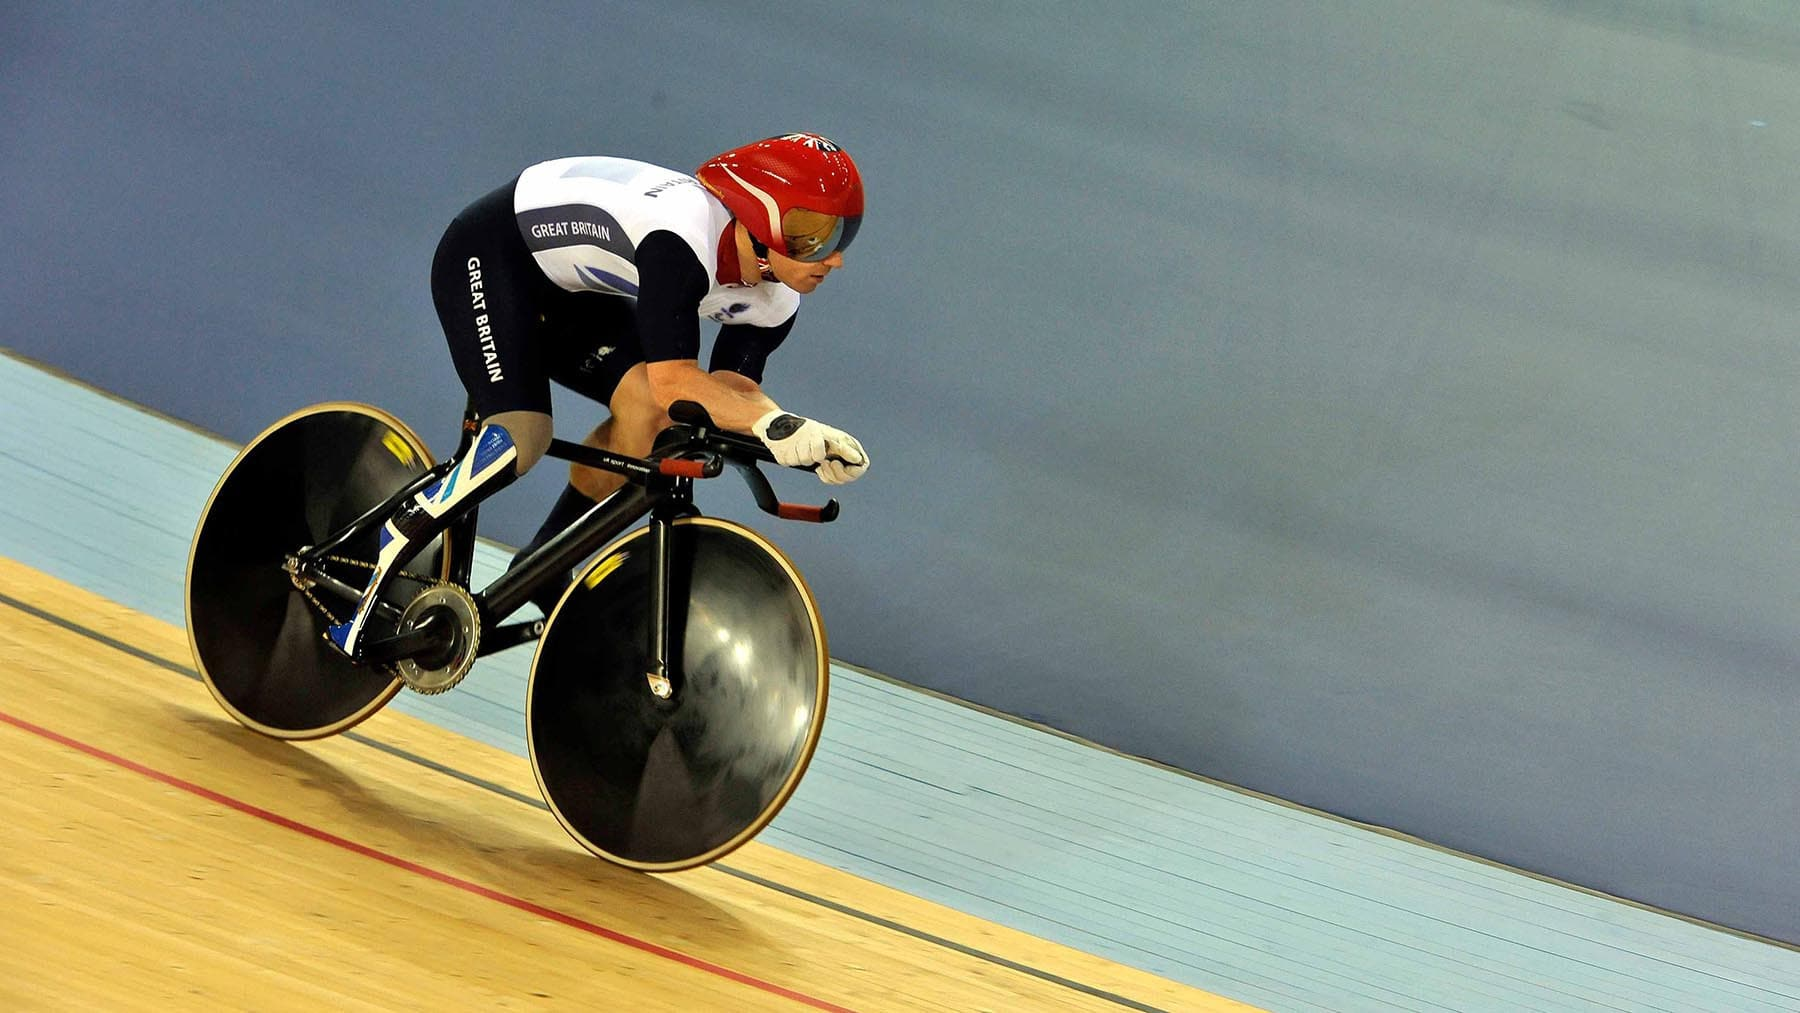 Paralympics London 2012 - Sports & Editorial Photography from © Neil Munns Photography